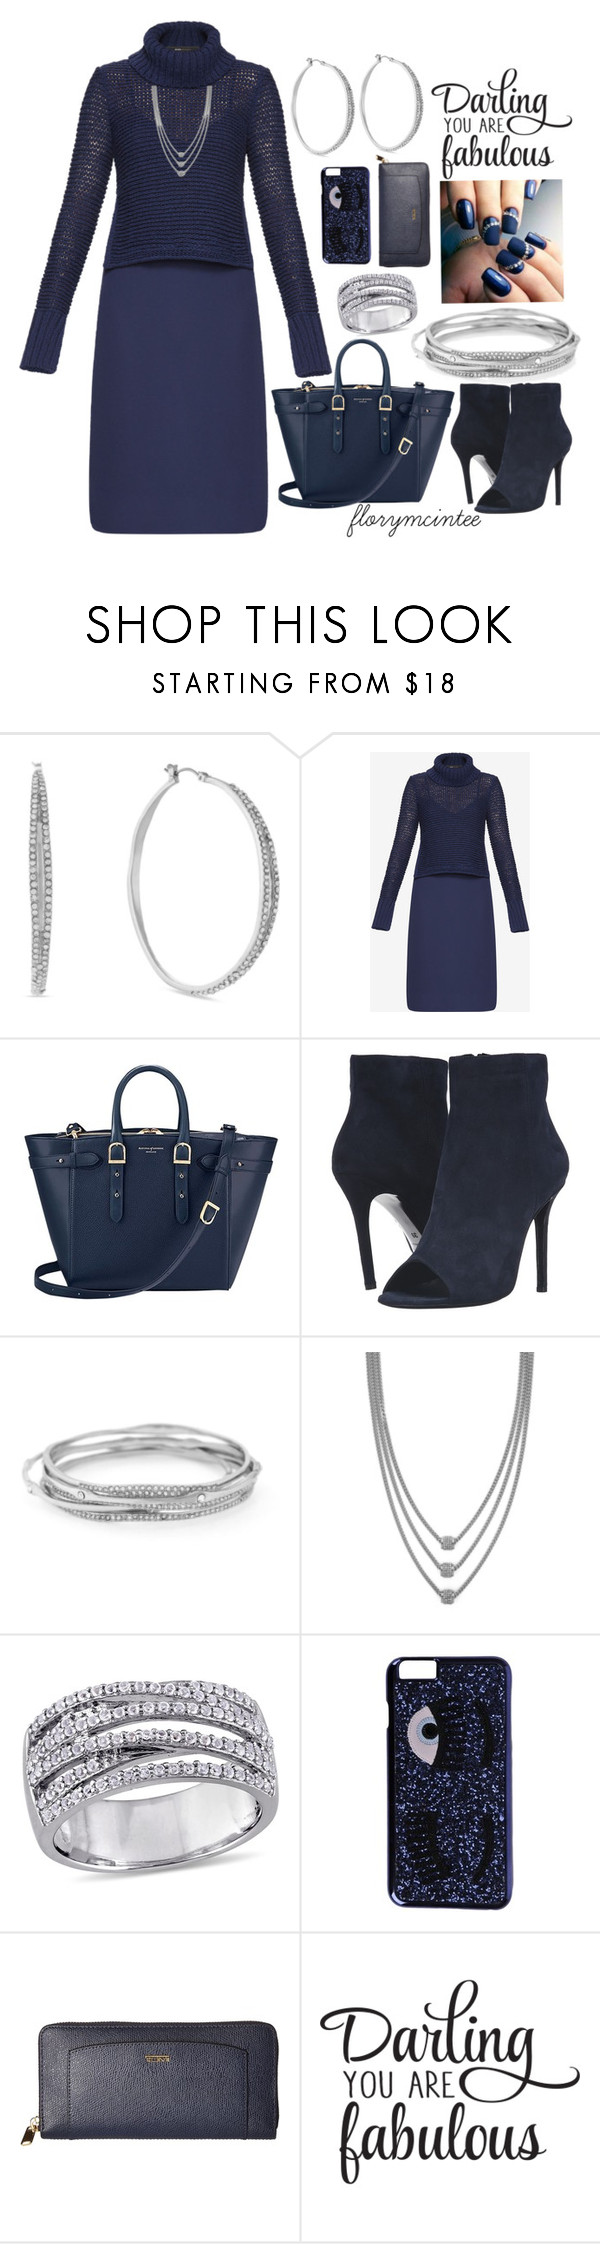 """""""Darling You Are Fabulous!"""" by florymcintee ❤ liked on Polyvore featuring Jessica Simpson, BCBGMAXAZRIA, Aspinal of London, The Kooples, Chiara Ferragni, Tumi and WALL"""